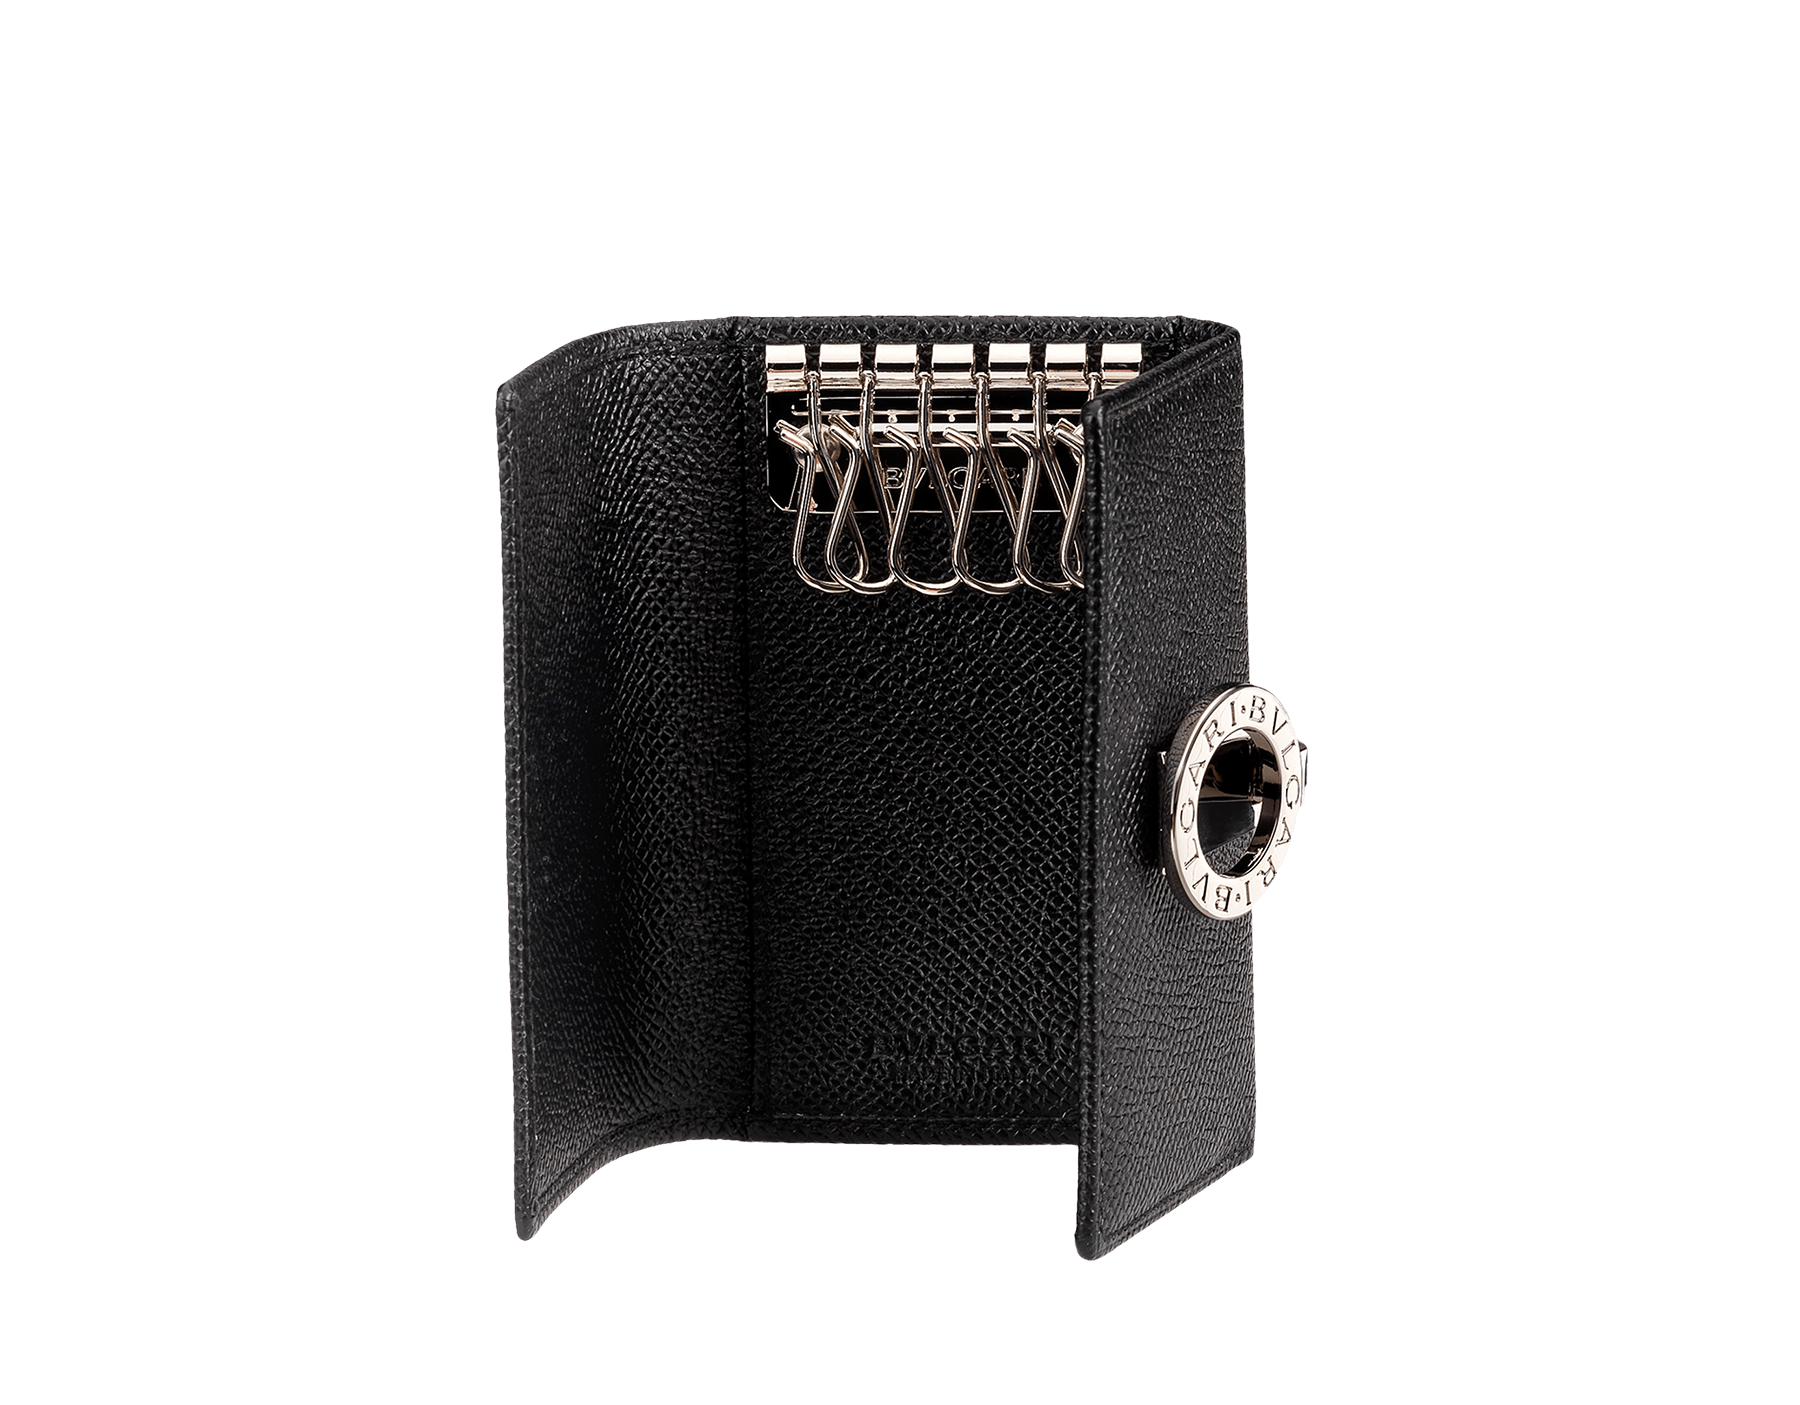 Black grain calf leather keyholder. Flap cover with clip and palladium plated hardware. Six internal keyholders. Dimensions: 2.8 x 3.9 (7 x 10 cm) 30422 image 1